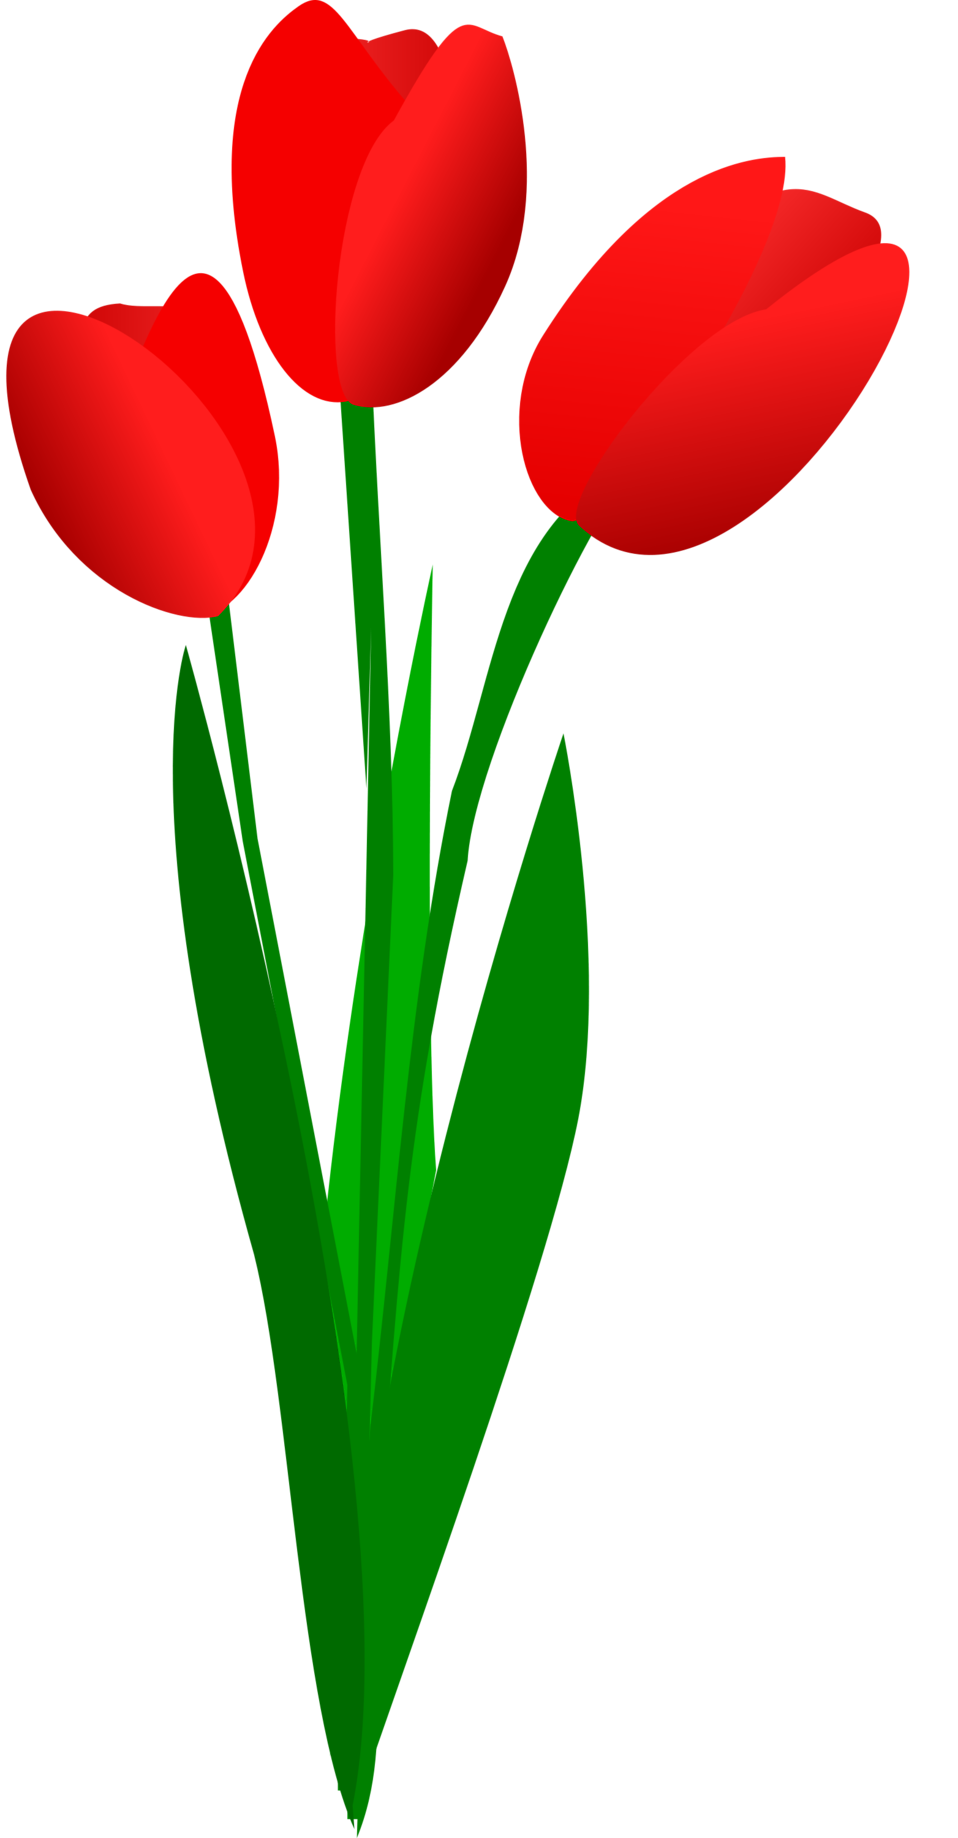 Illustration of red tulips with a transparent background.